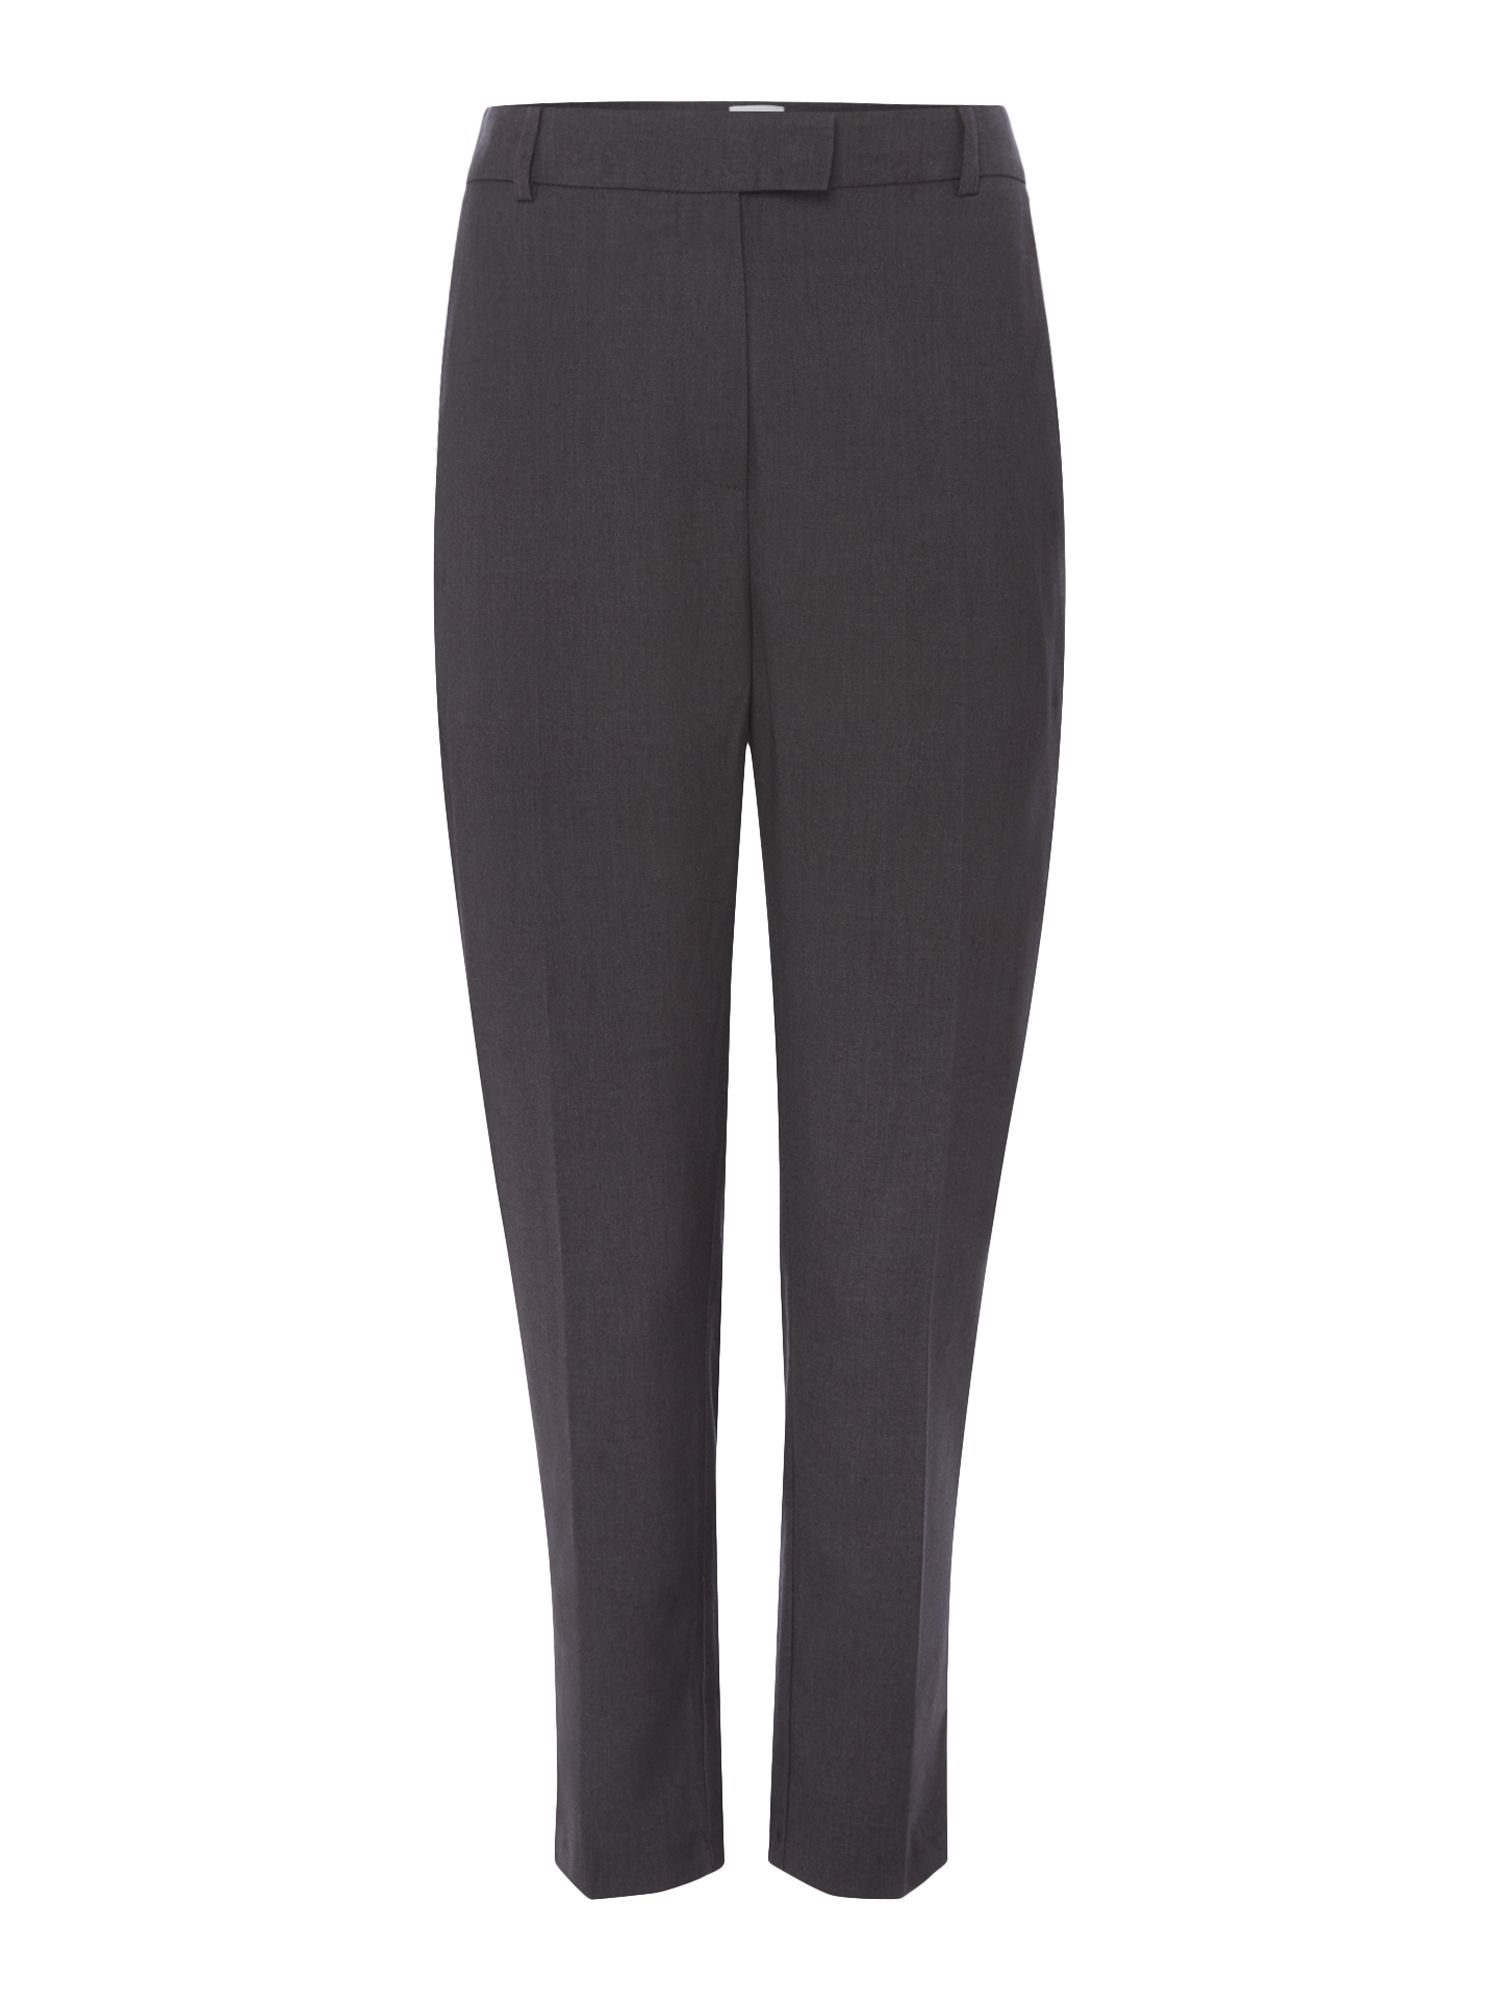 Linea Mona slim leg trouser, Grey